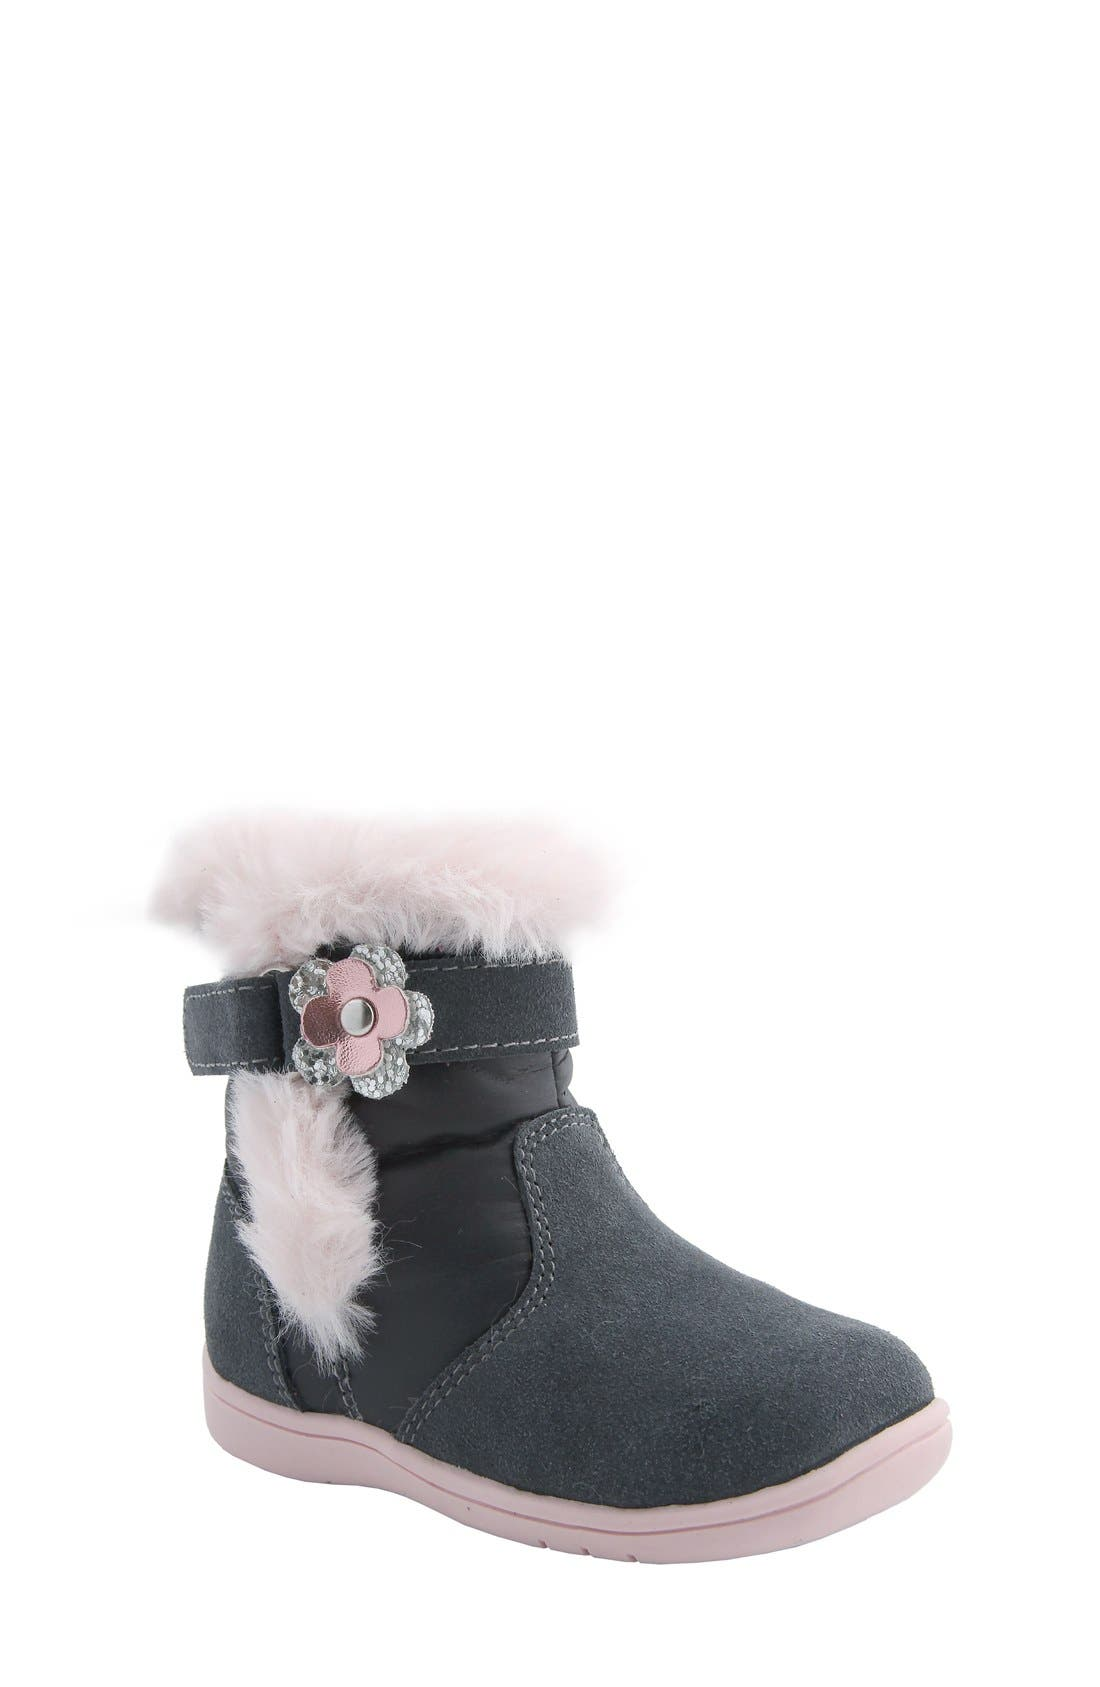 MOBILITY, Nina 'Anya' Faux Fur Bootie, Main thumbnail 1, color, GREY SUEDE